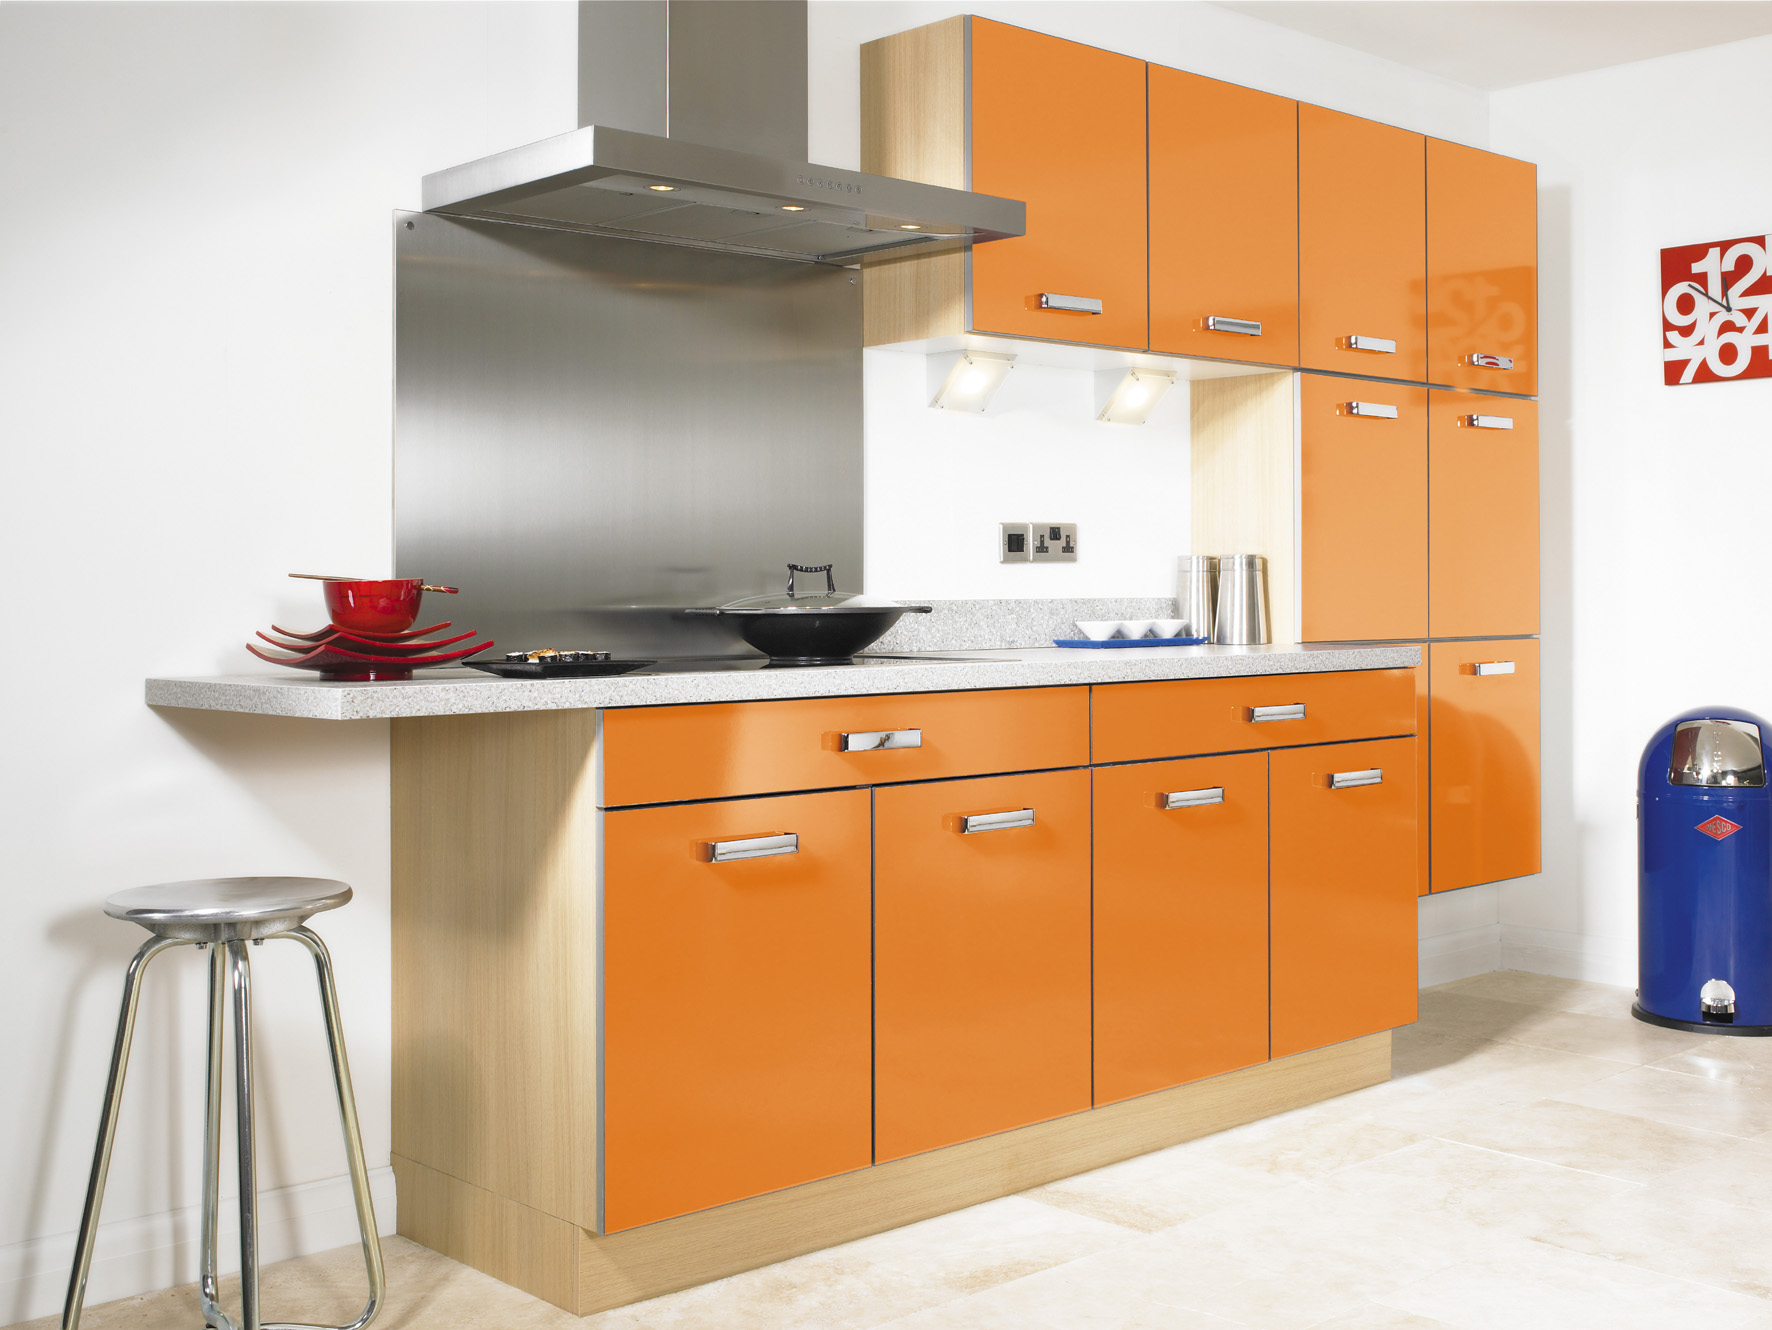 Incredible Orange Kitchen Design Ideas 1772 x 1330 · 364 kB · jpeg